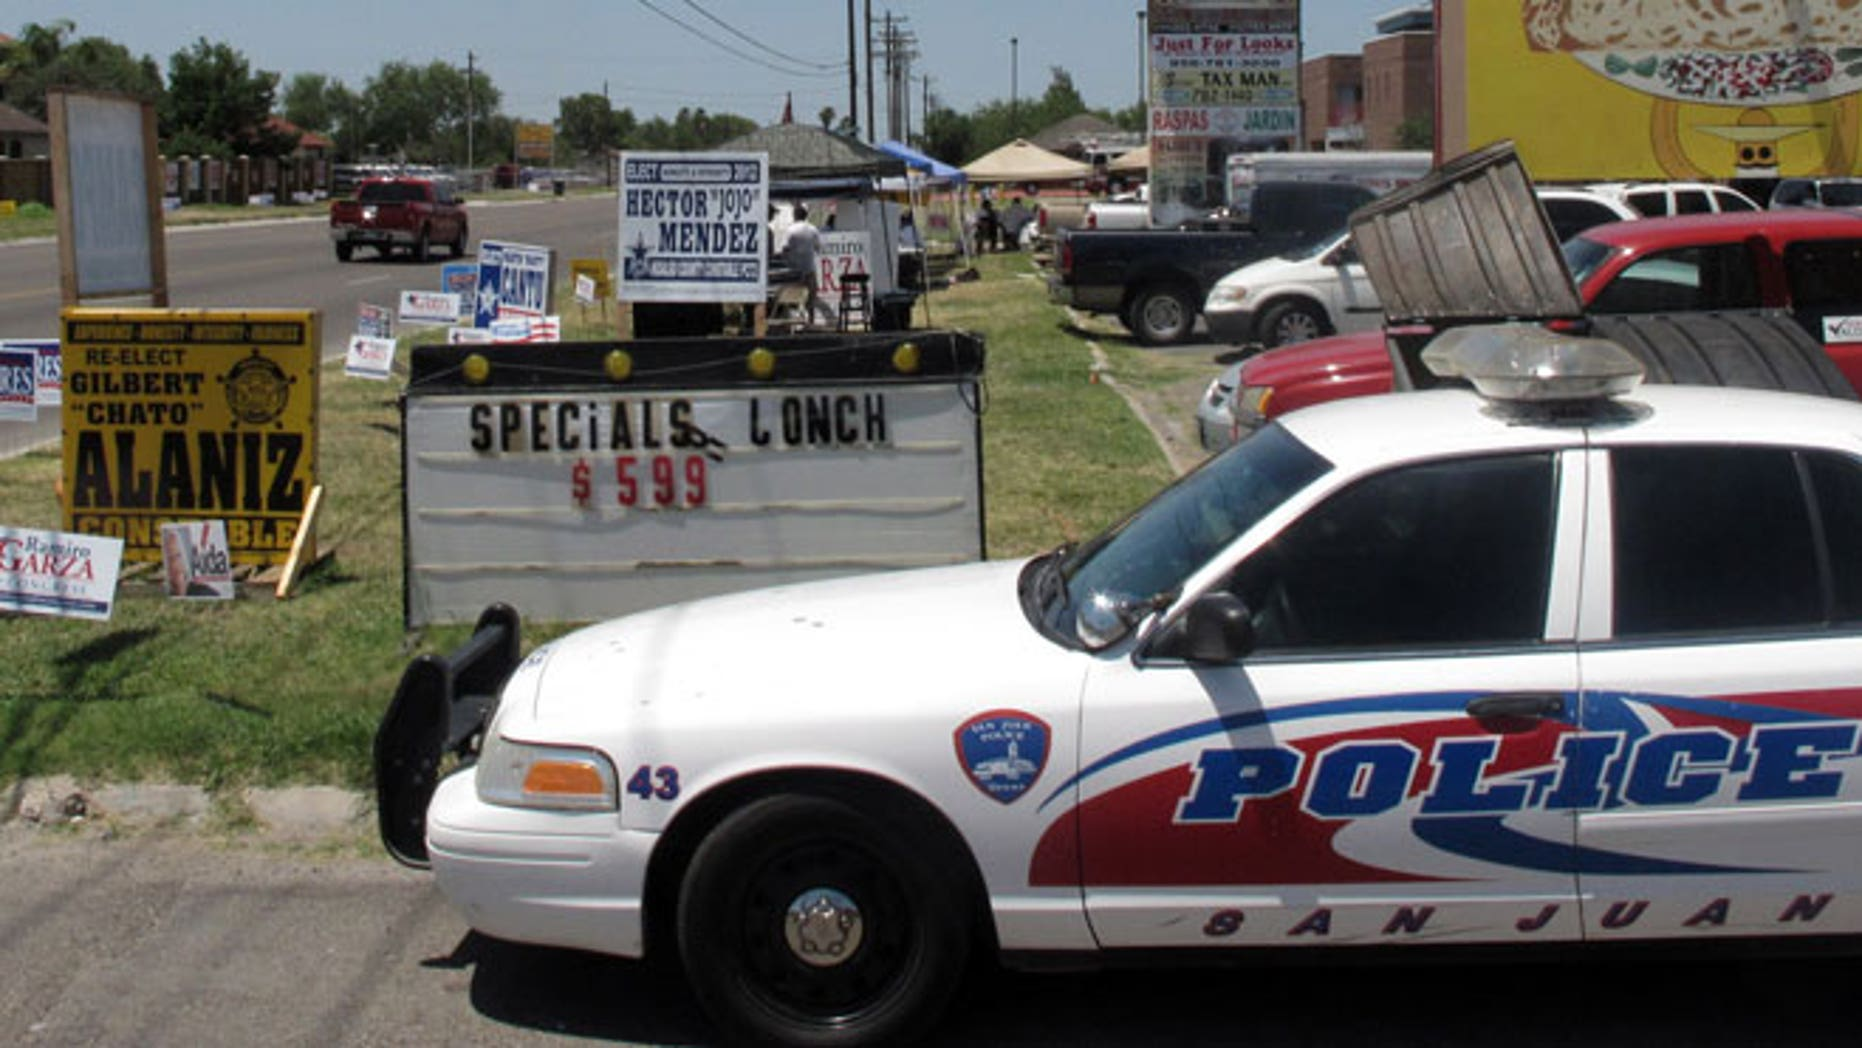 May 29, 2012: Police remain on a busy corner in San Juan, Texas where one man holding a campaign sign was shot in the leg by someone in a passing vehicle.